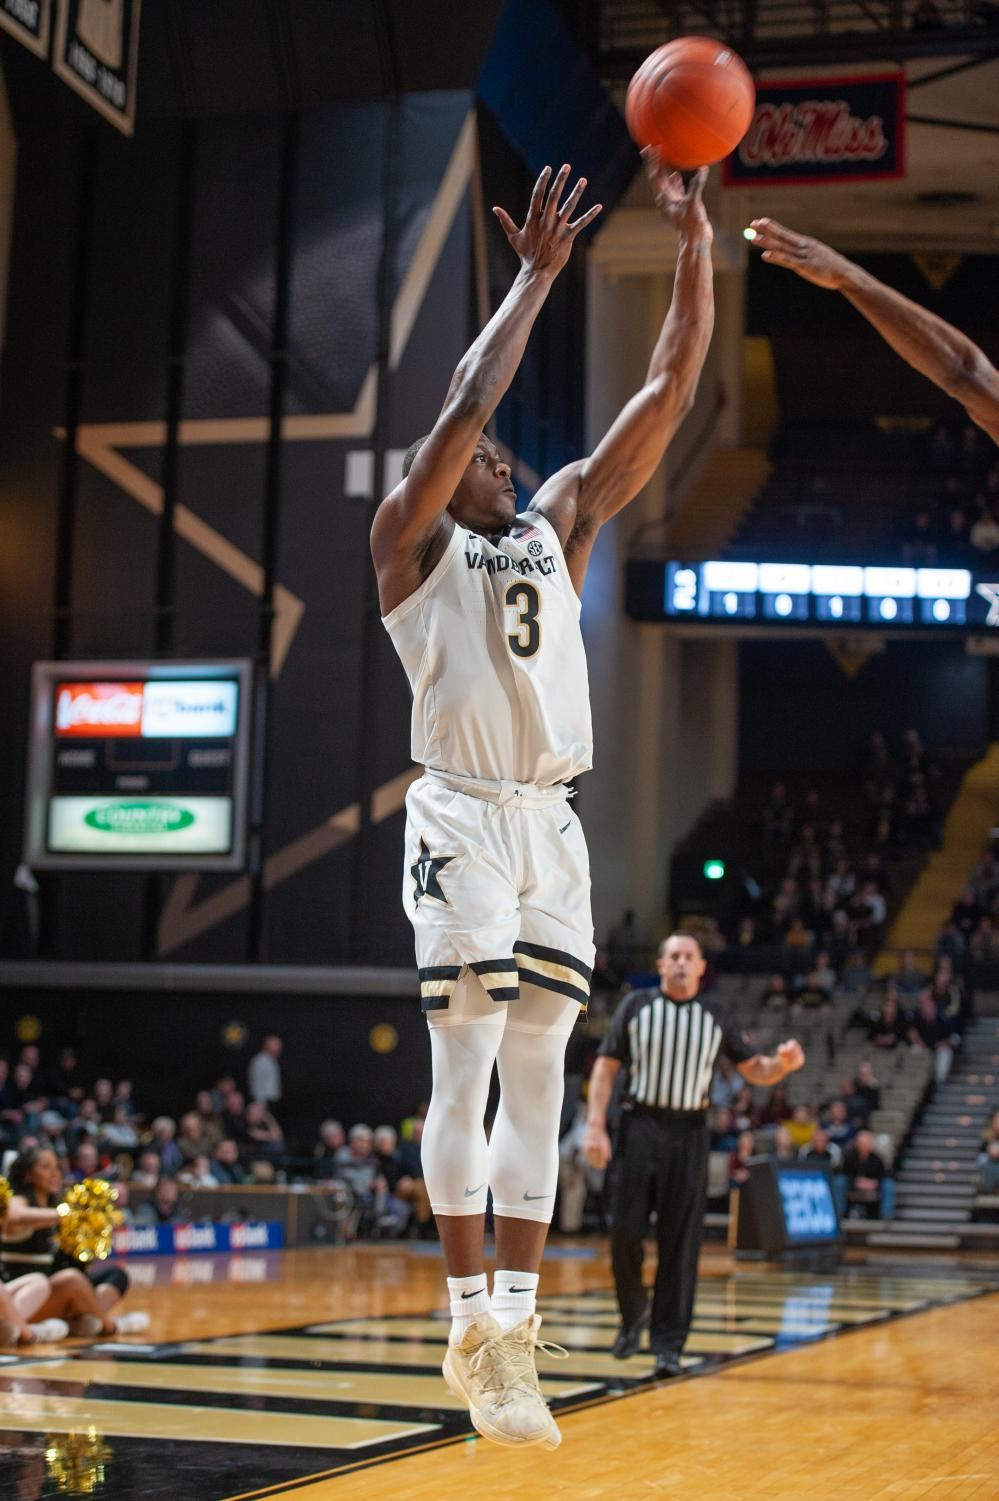 Guard Max Evans (3) hit a career high 7 three pointers in the Commodores win over LSU on Feb. 5th.